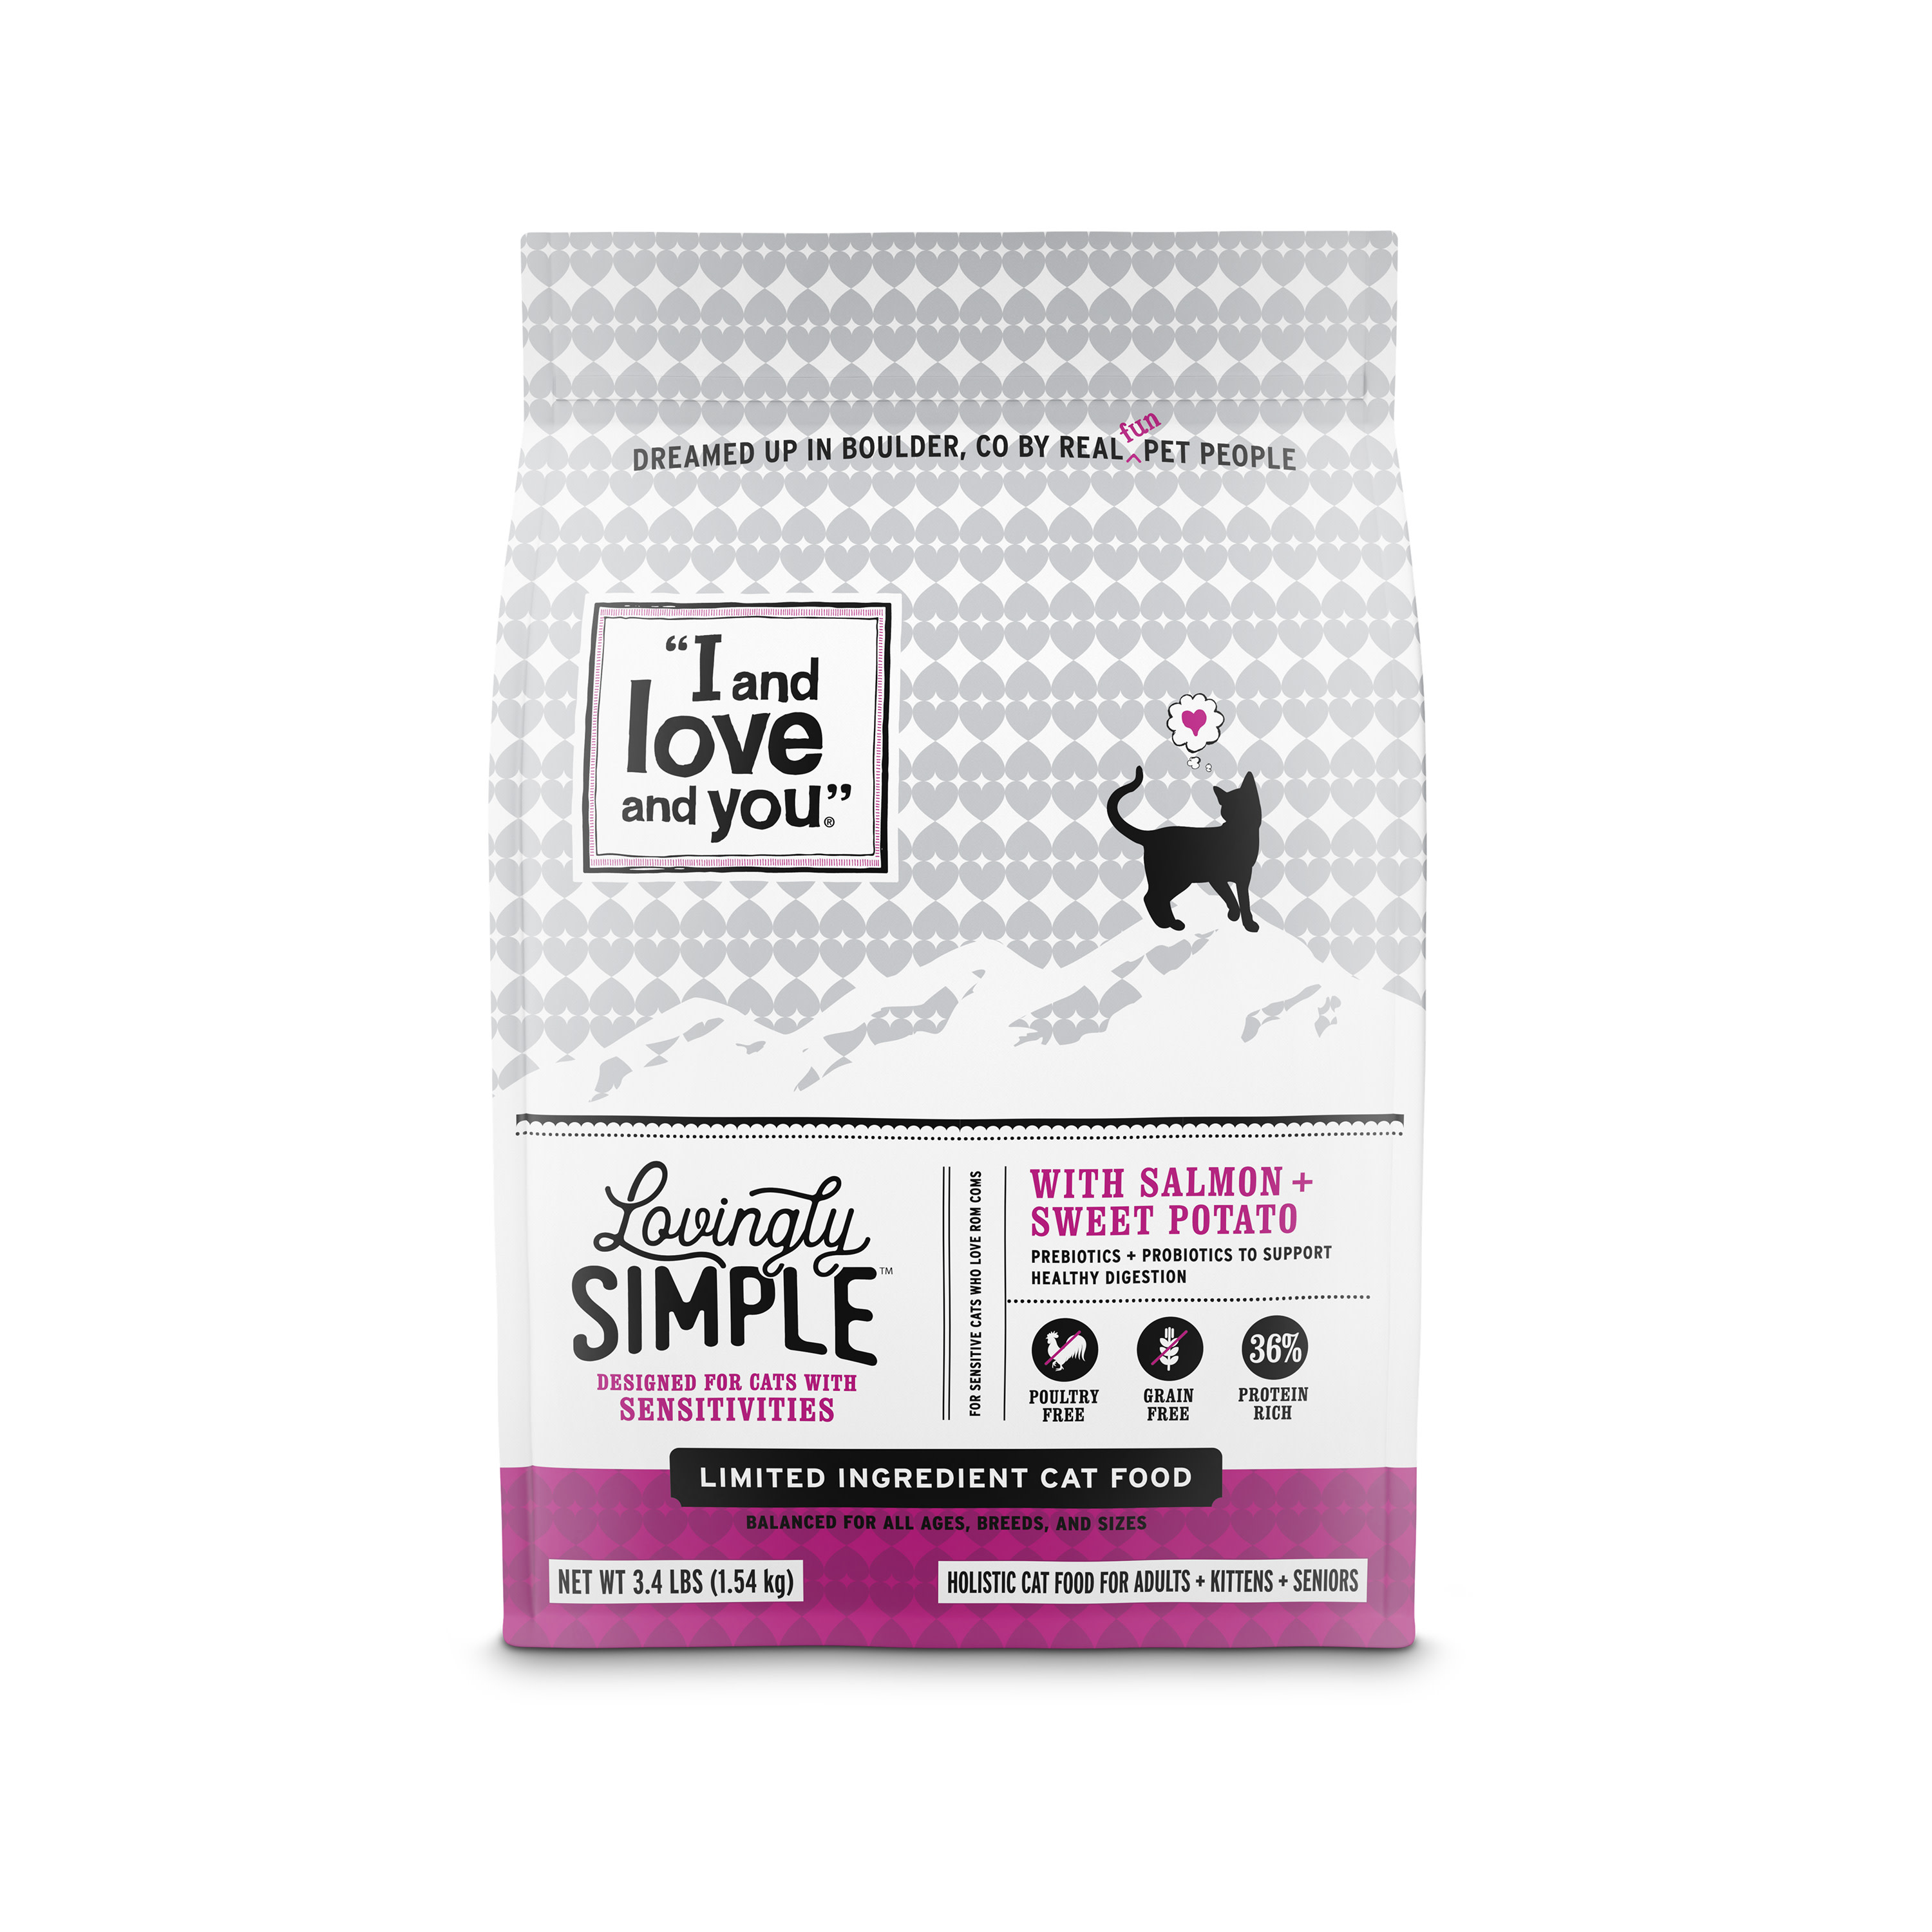 I and Love and You Lovingly Simple with Limited Ingredient Salmon & Sweet Potato Dry Cat Food, 3.4 lb